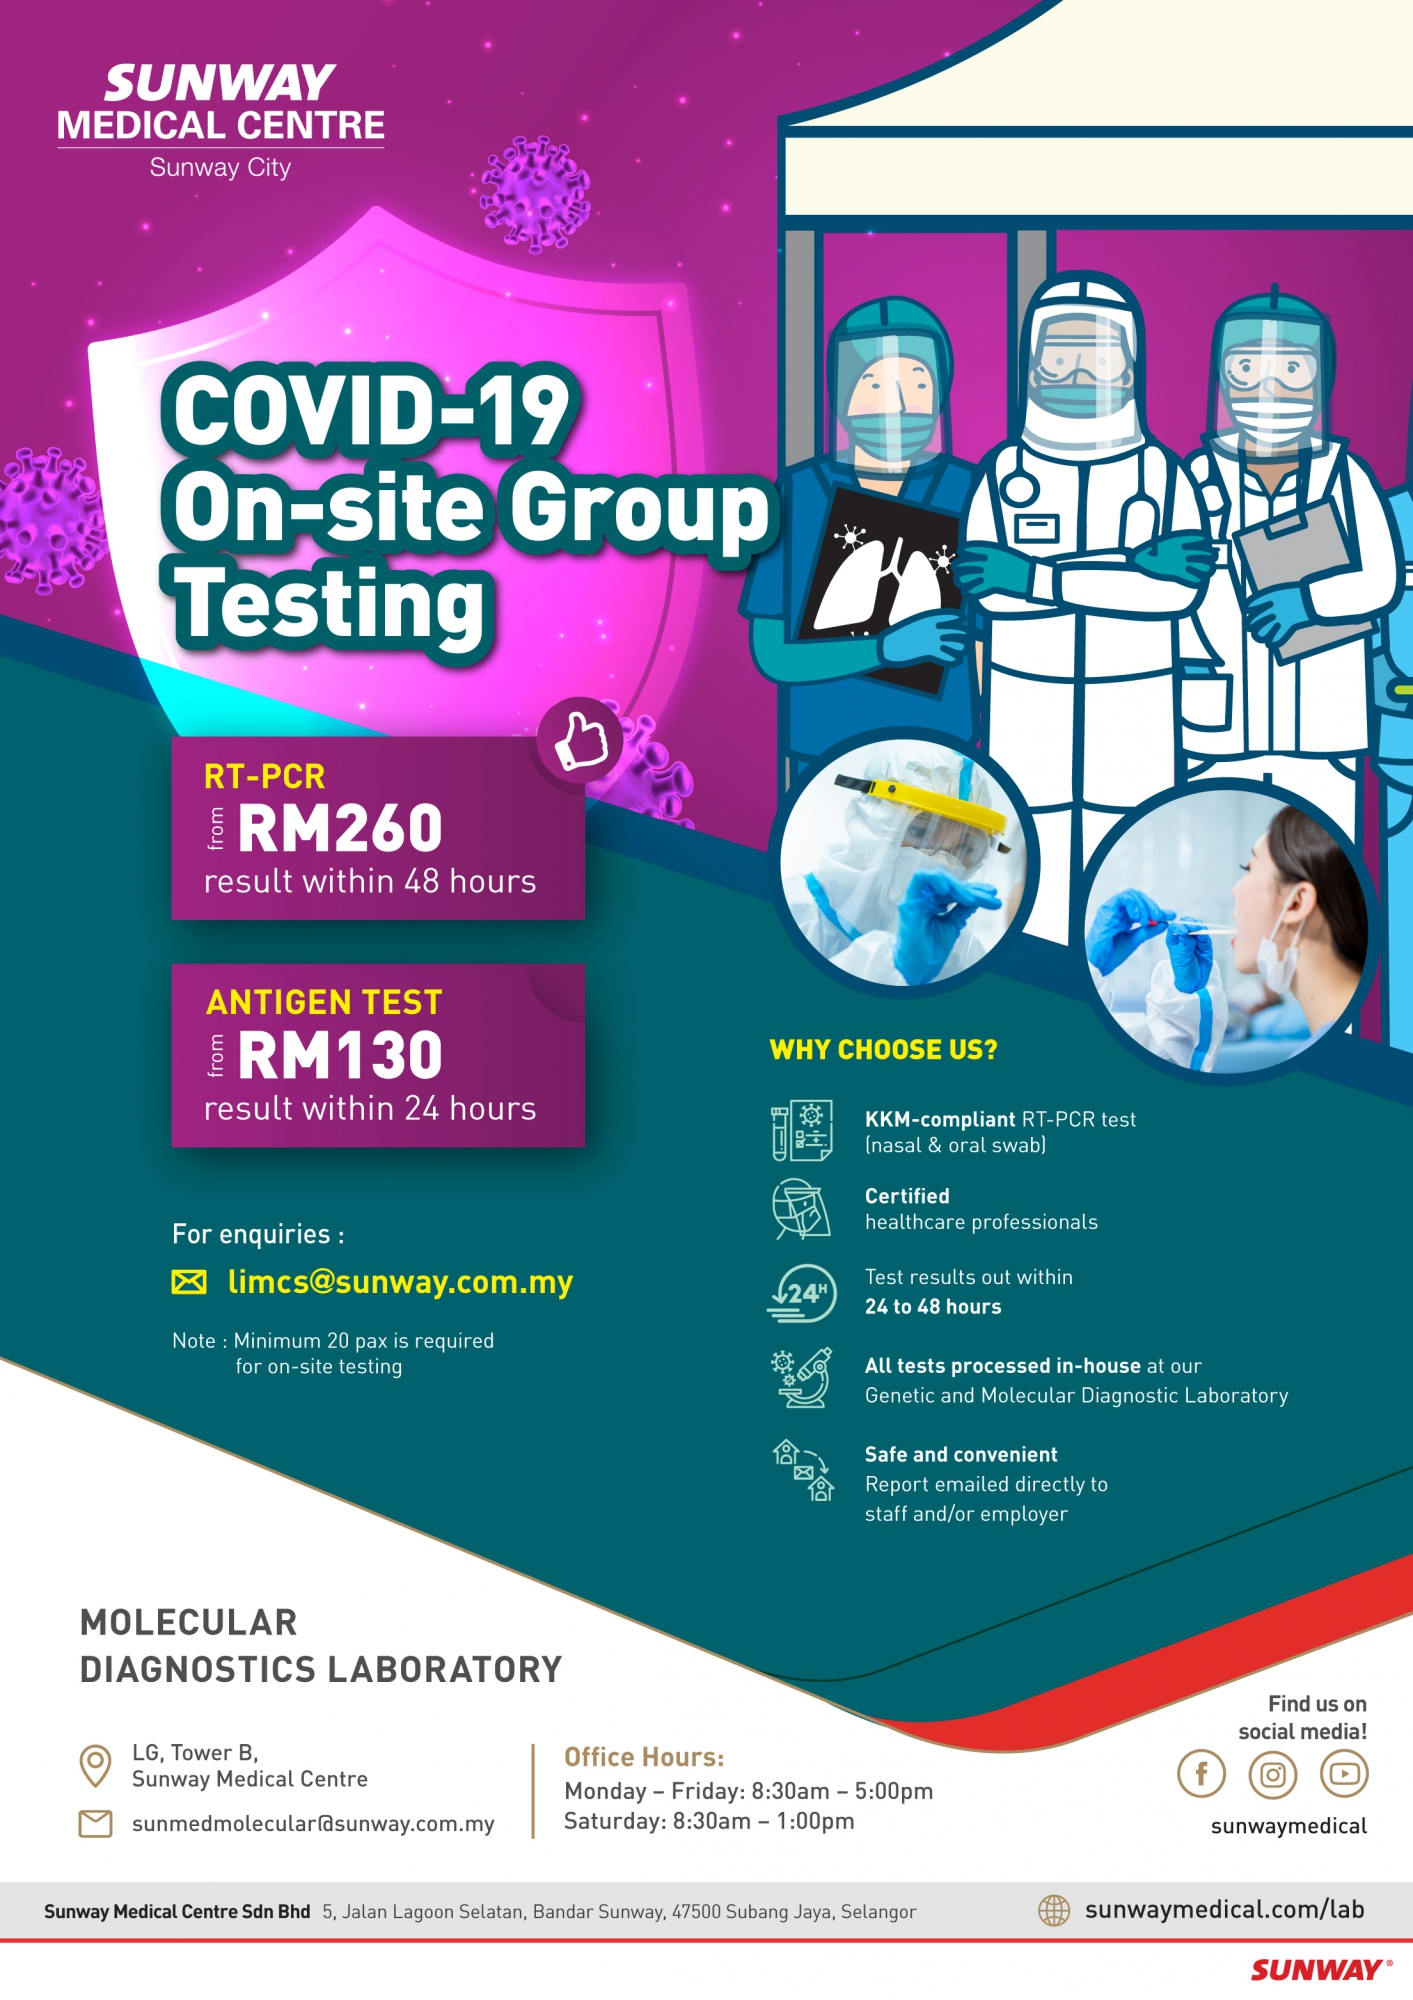 Covid-19 On-Site Test